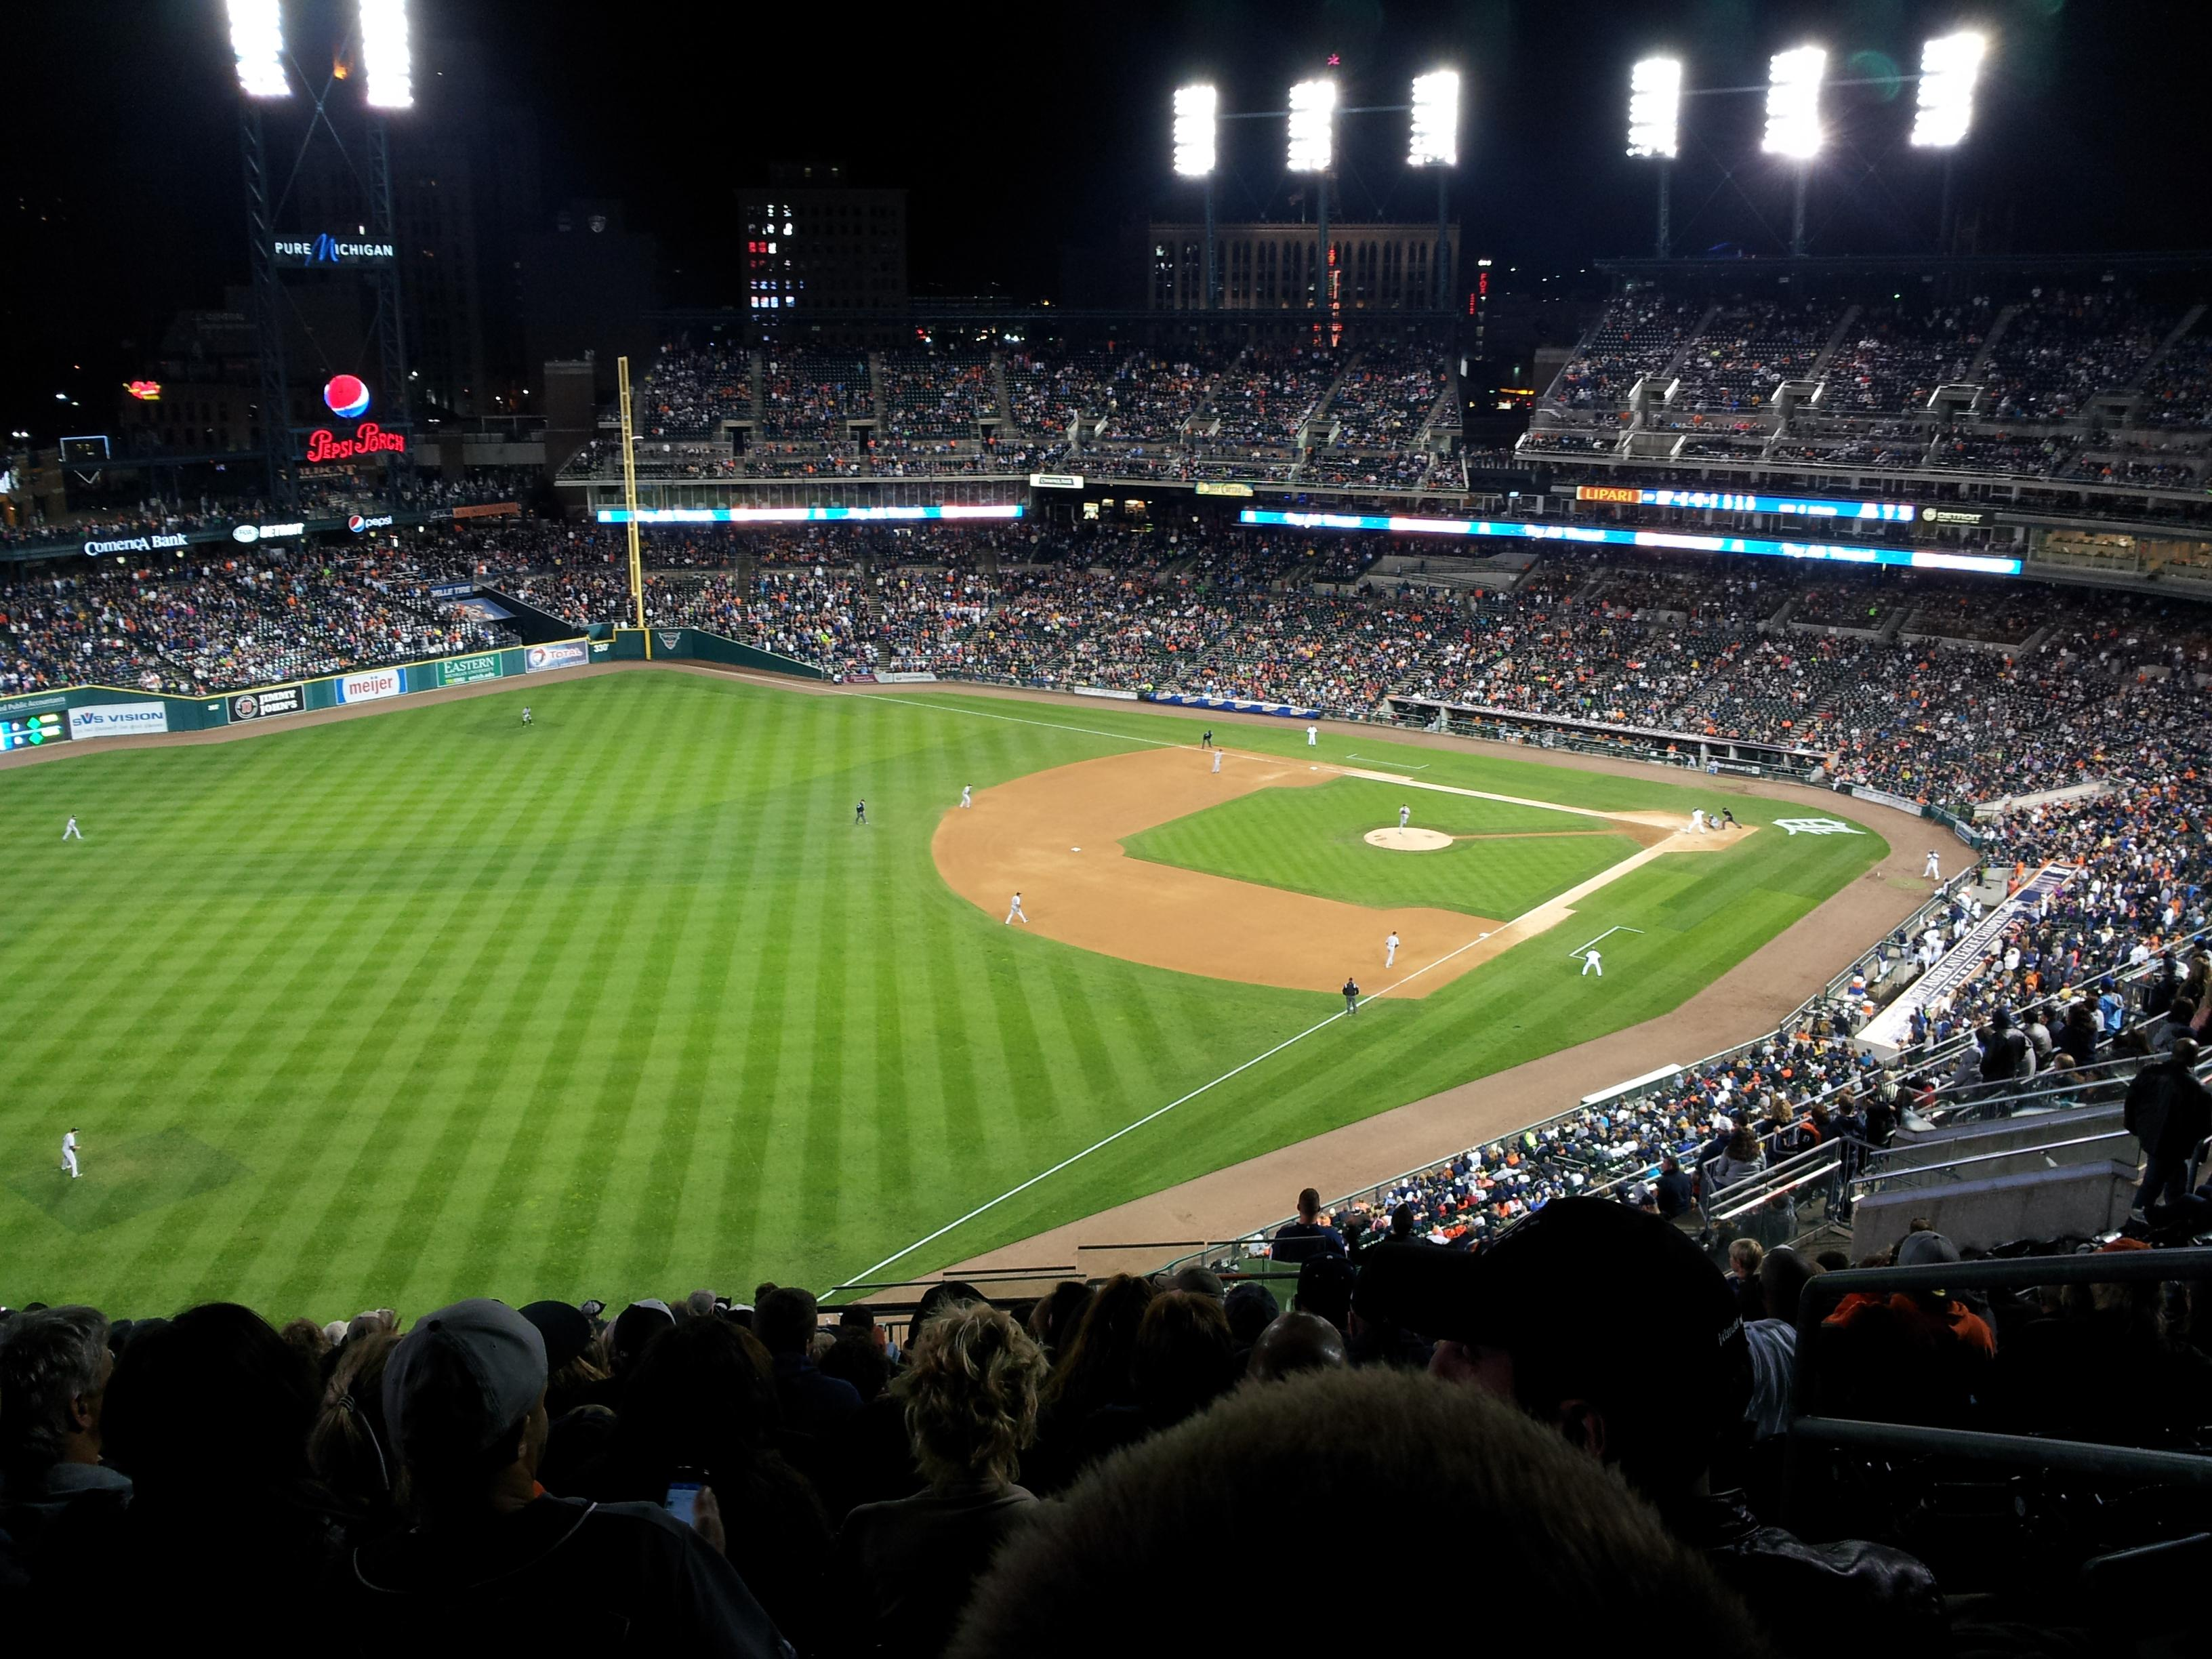 Comerica Park Section 343 Row 19 Seat 4